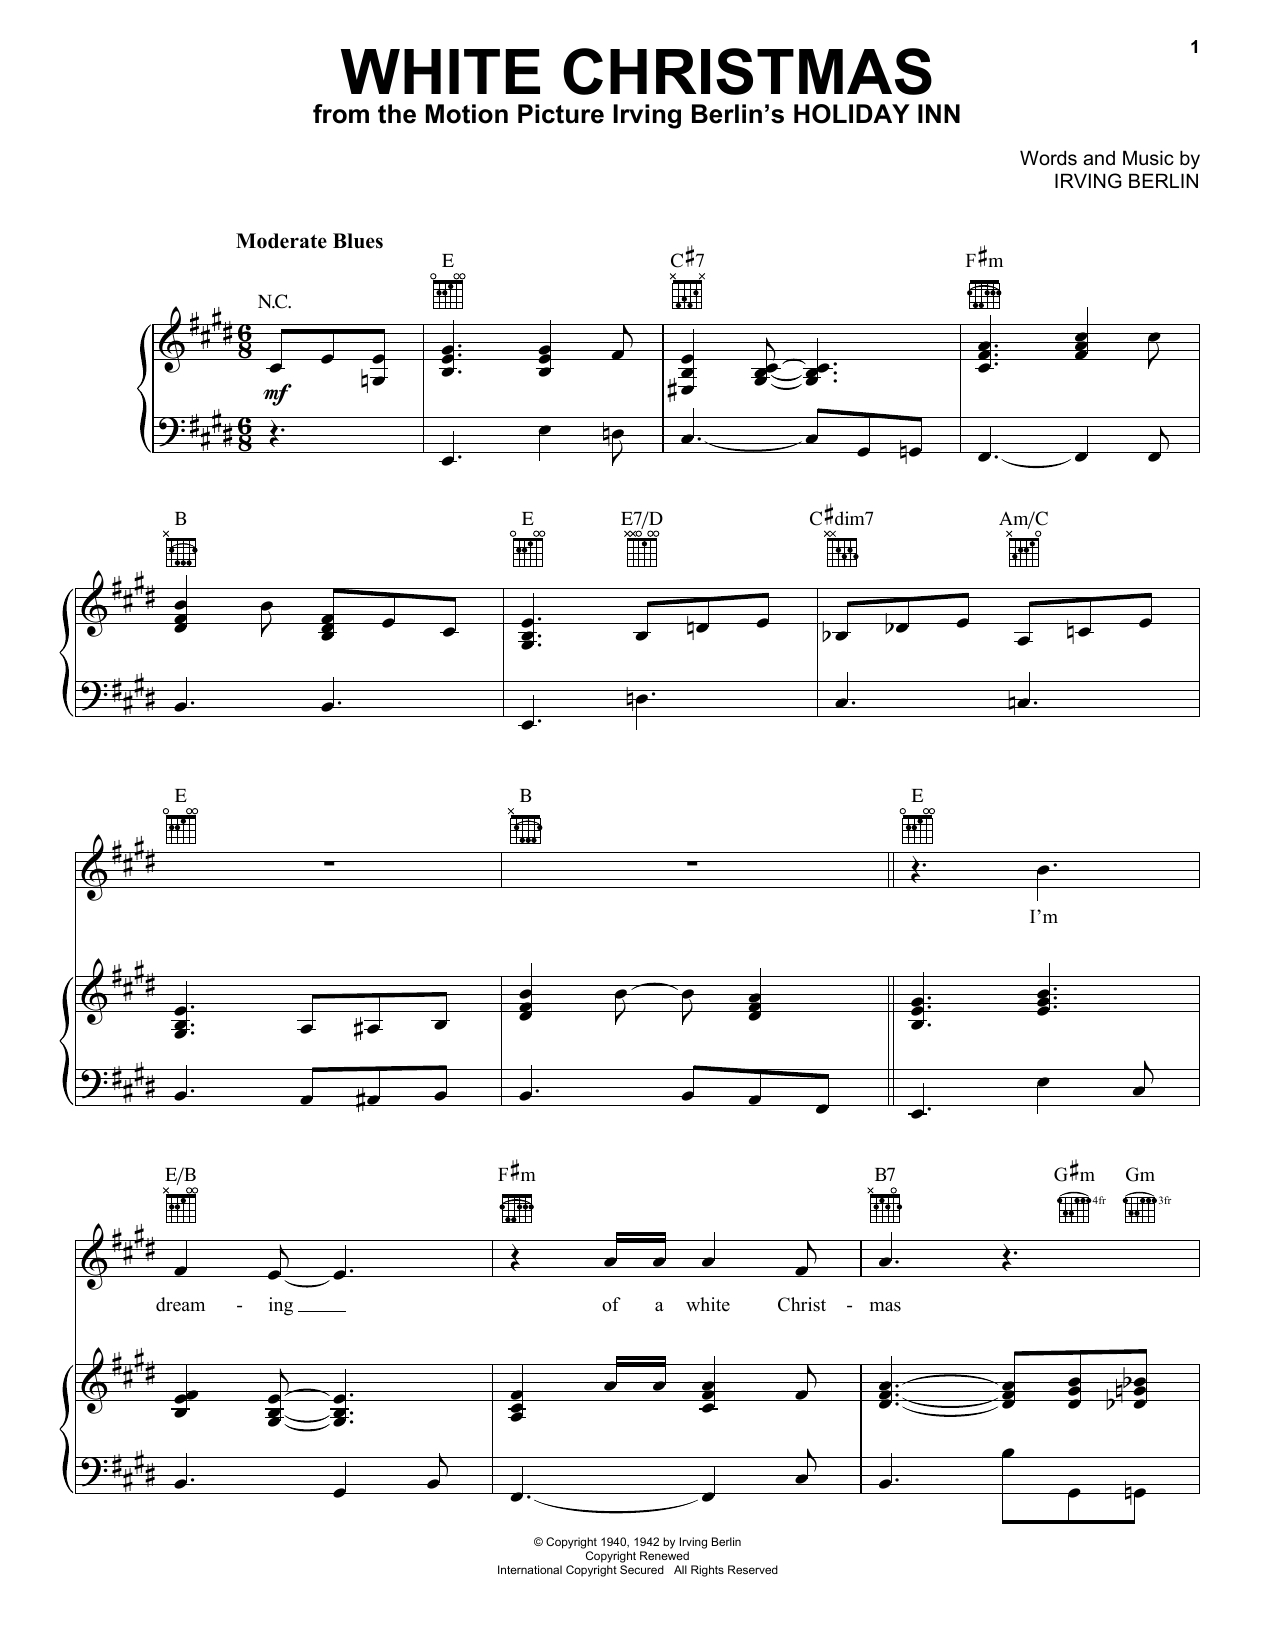 White Christmas Chords Eric Clapton White Christmas Sheet Music Notes Chords Download Printable Piano Vocal Guitar Right Hand Melody Sku 403035